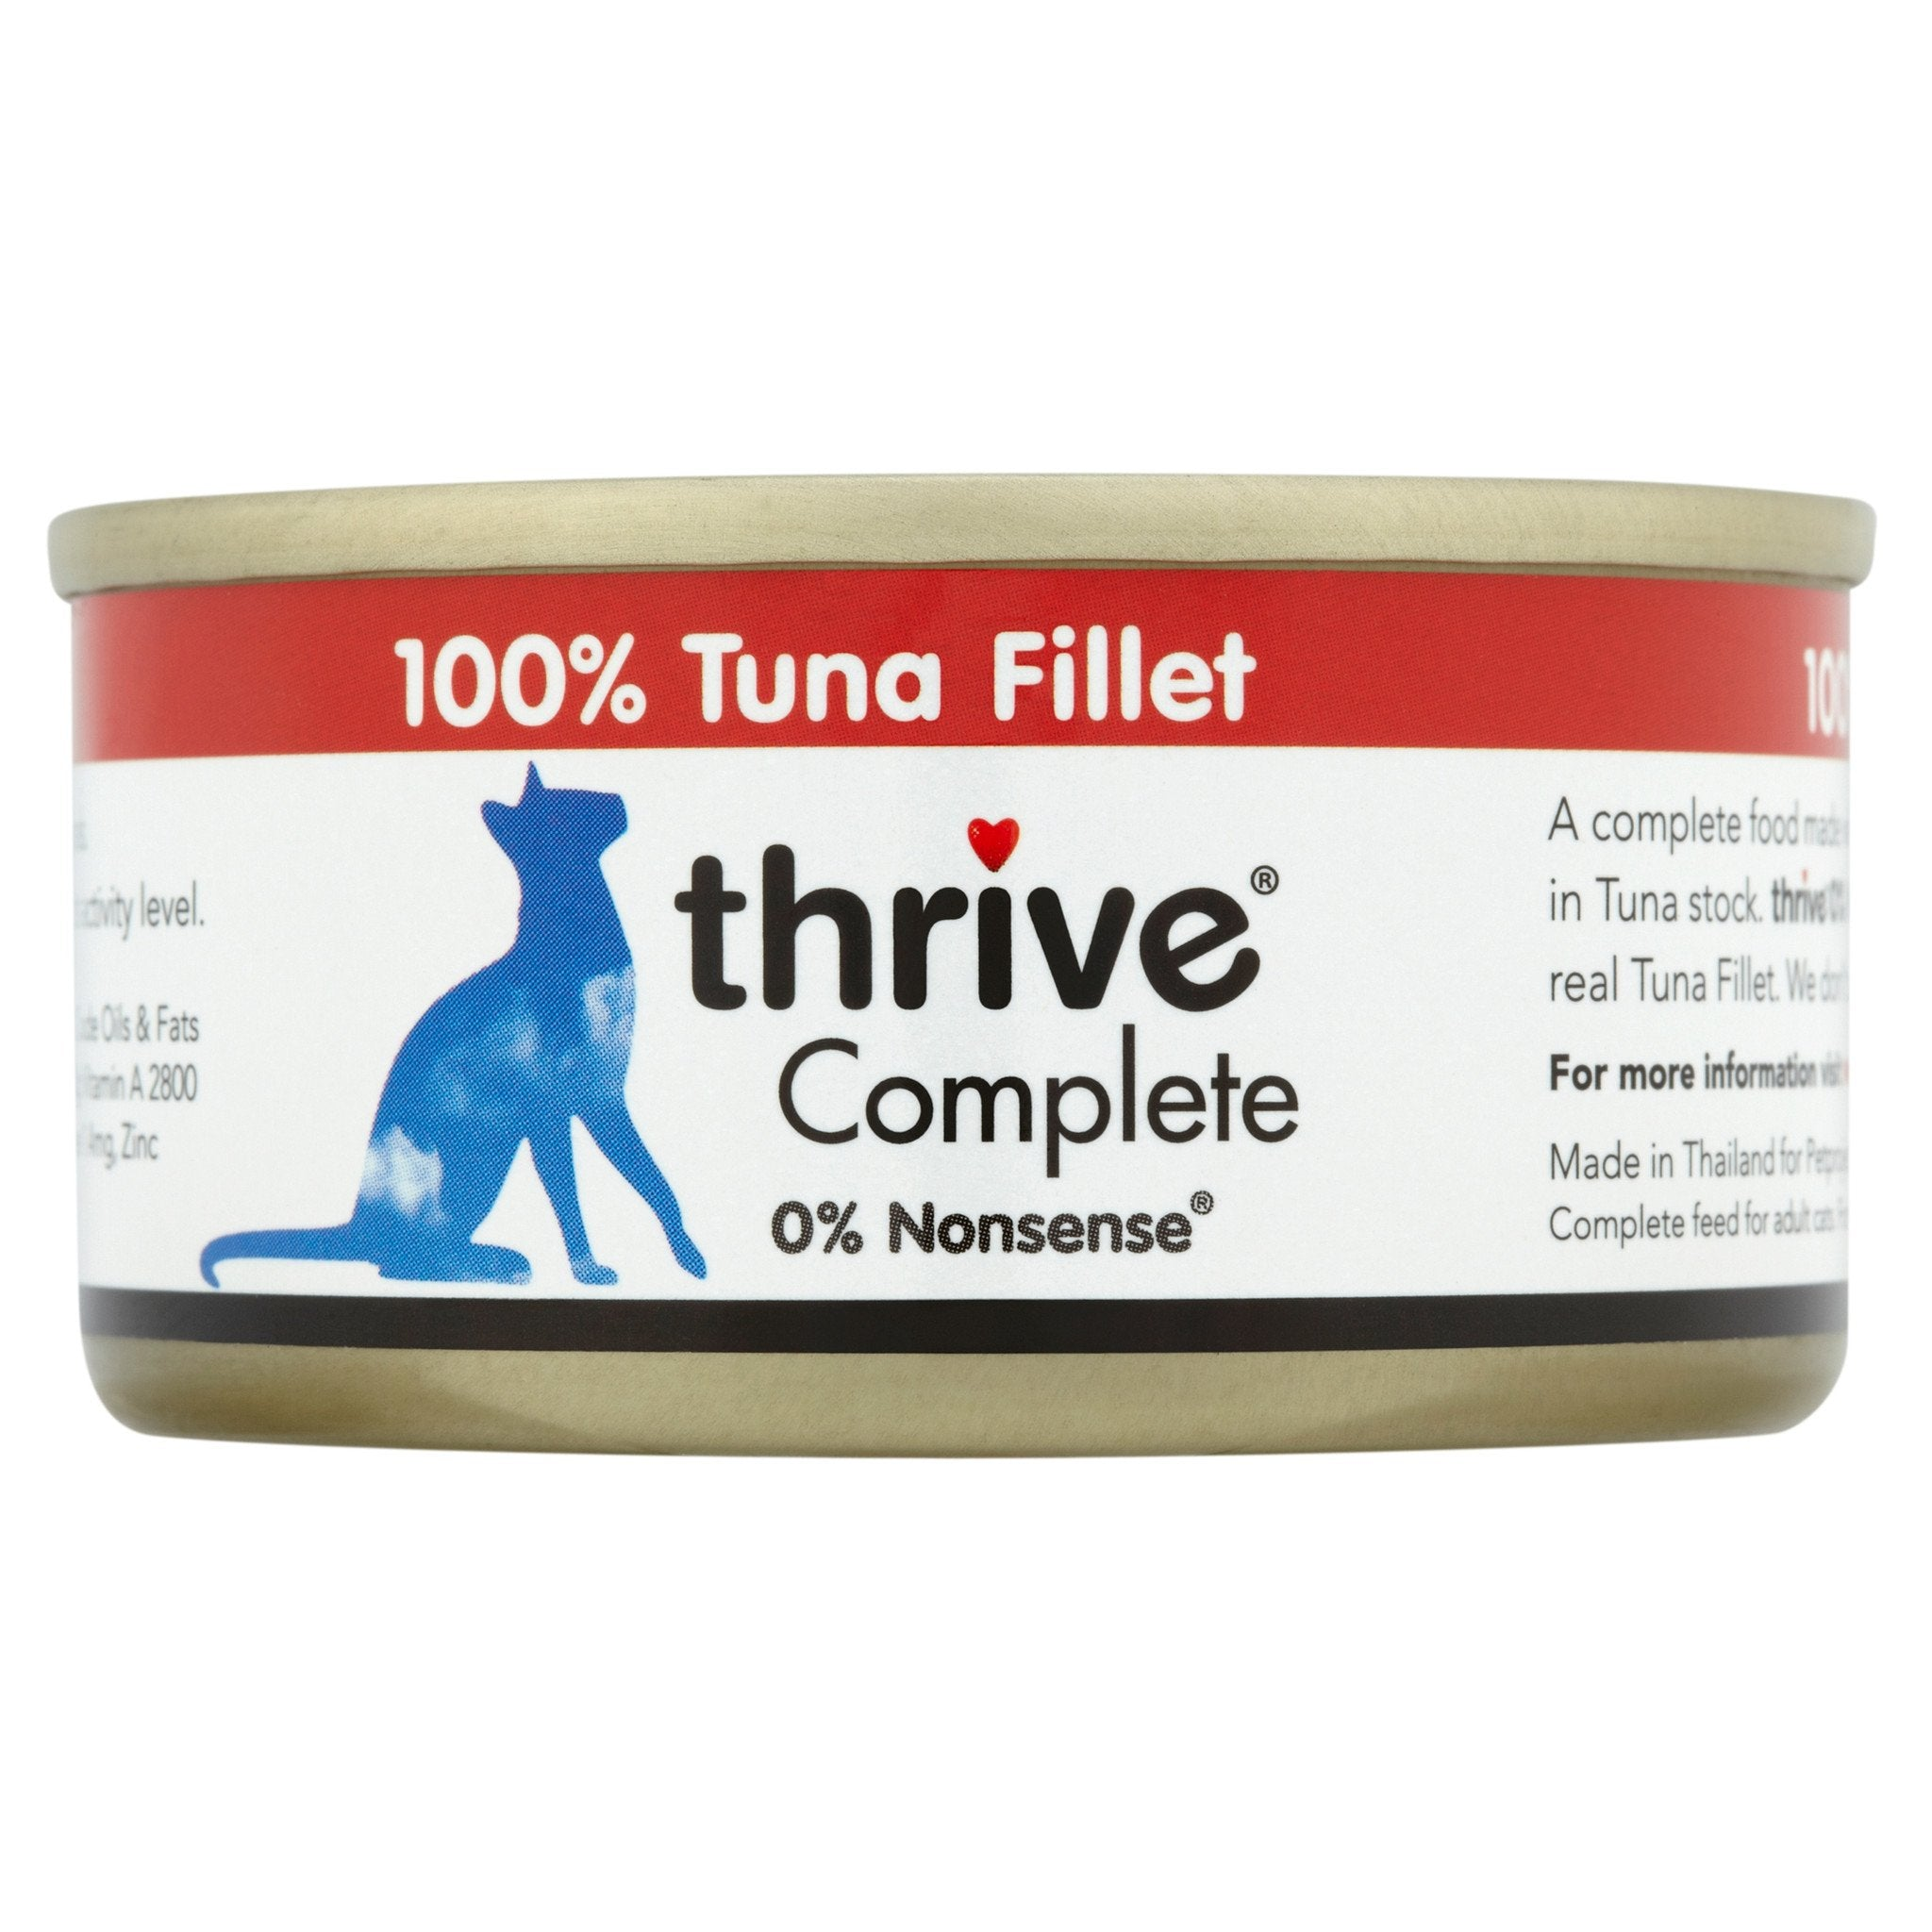 Thrive Tuna Fillet 75g